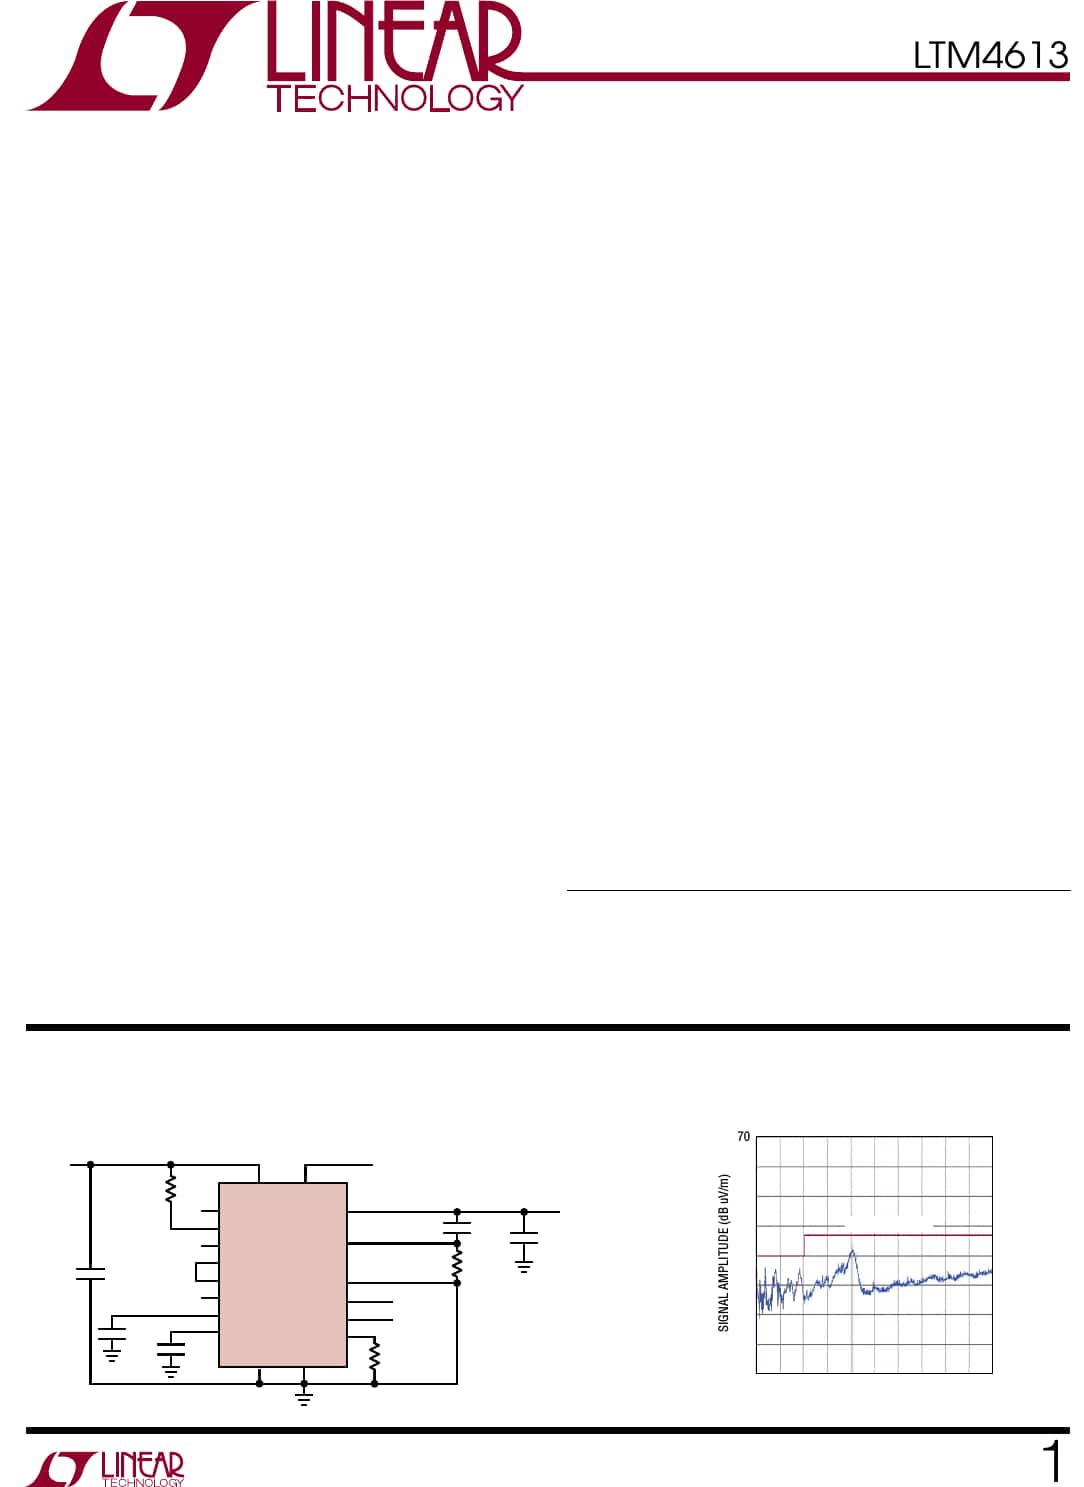 hight resolution of ltm4613 datasheet linear tech adi digikey hose furthermore condenser microphone diagram as well 24v relay coil